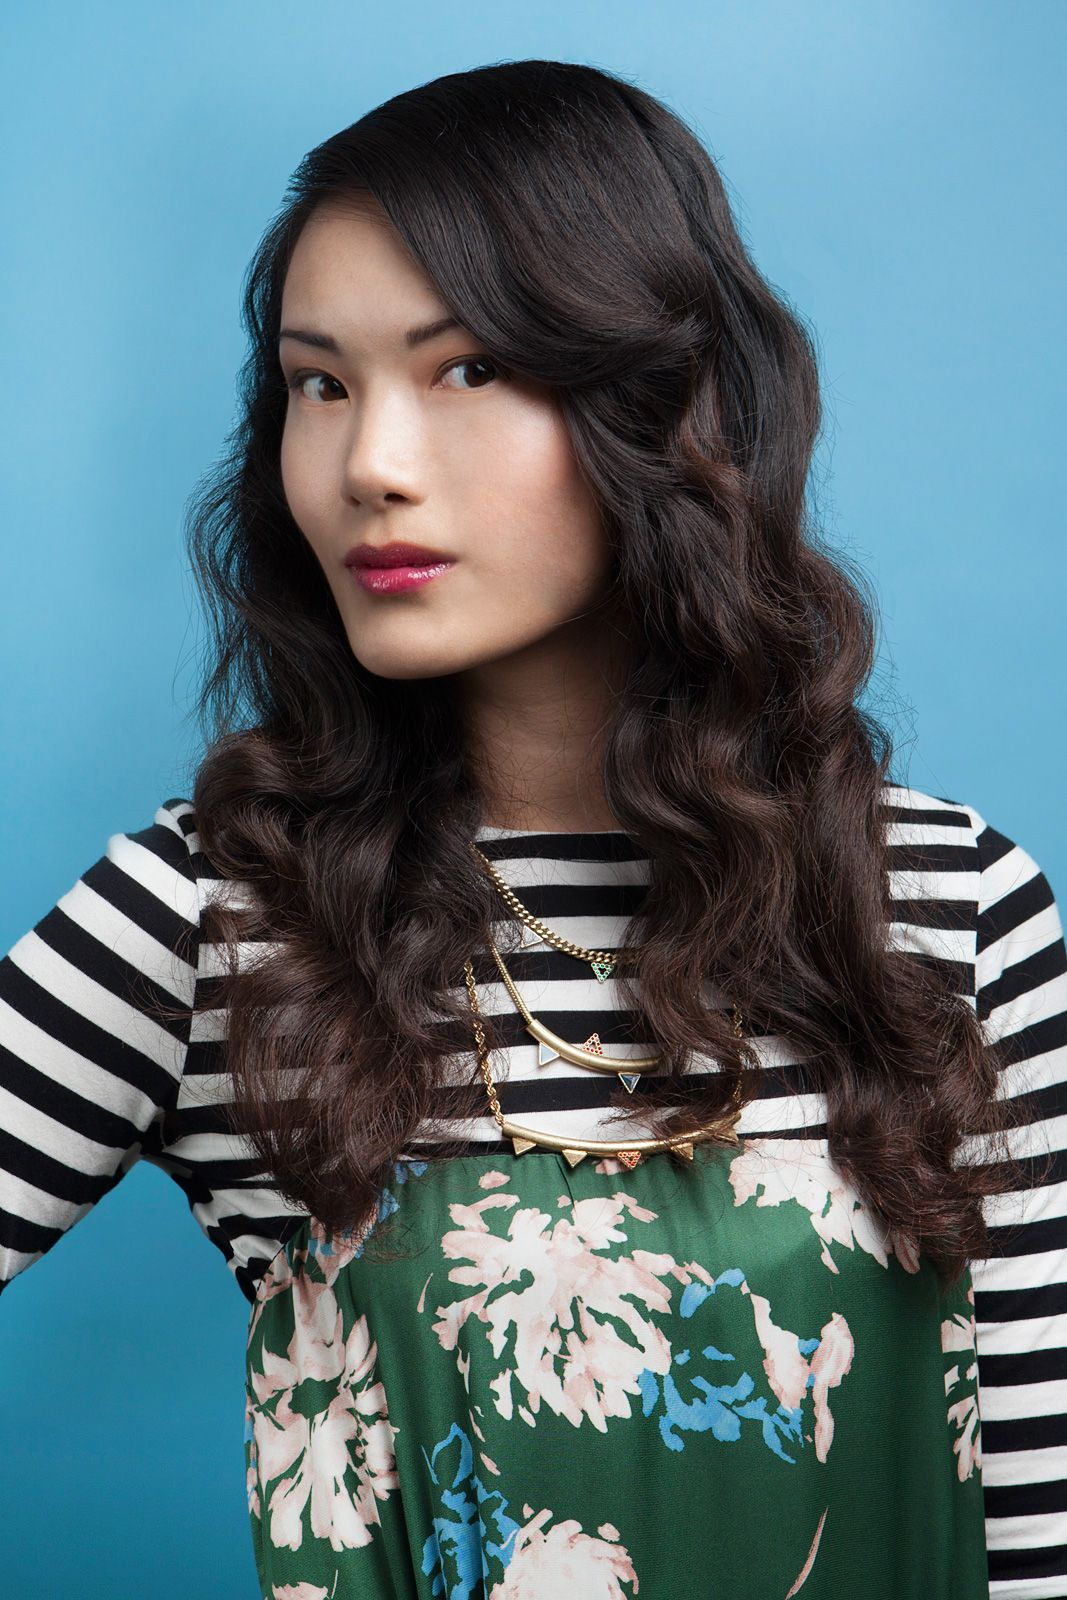 Wet hairstyles what to do with damp hair cute looks vintage